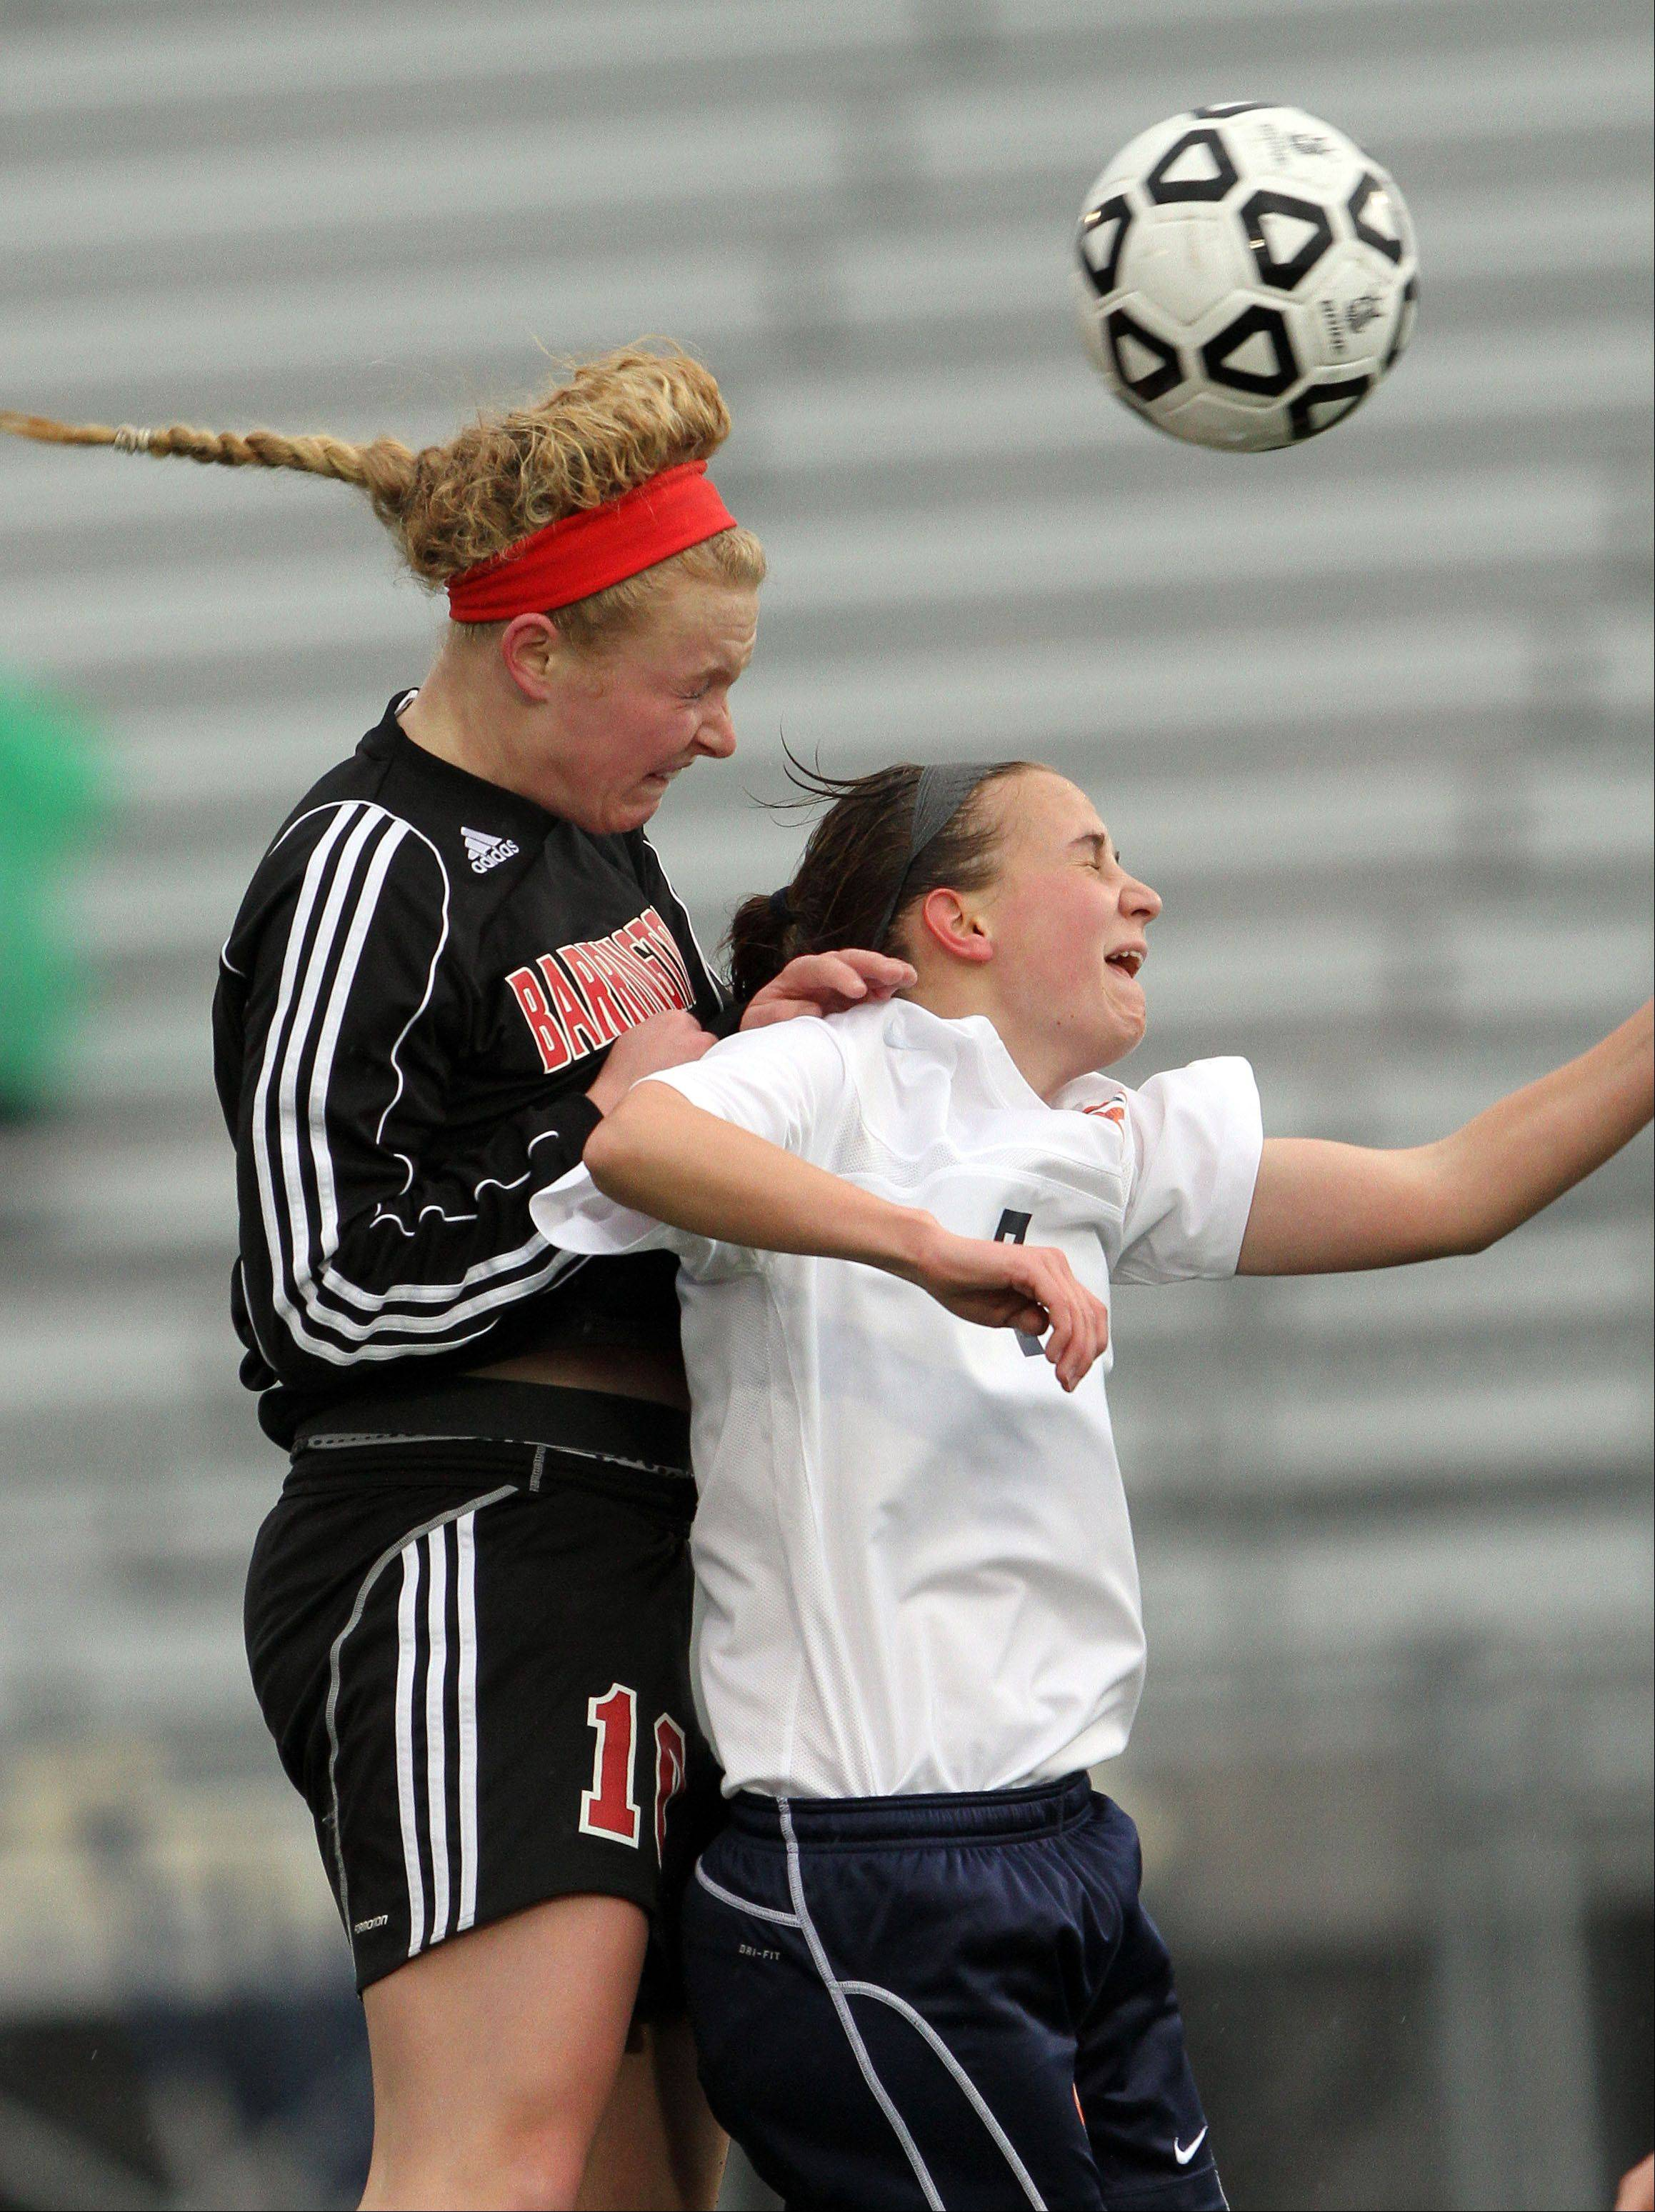 Barrington's Molly Pfeiffer, left, and Buffalo Grove's Jessica Kovach go up for a header during their game Monday night at Buffalo Grove High School.